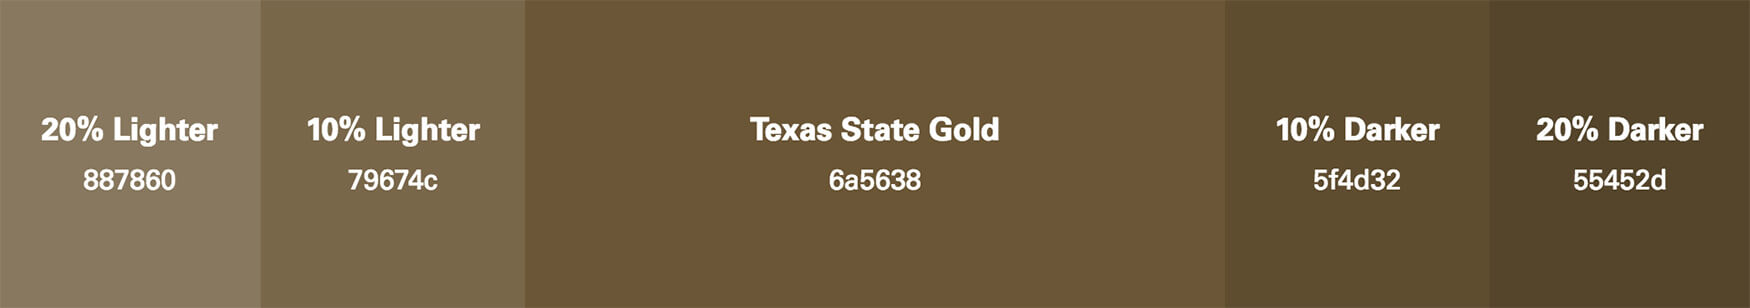 Demo showing tints and shades of Texas State Gold